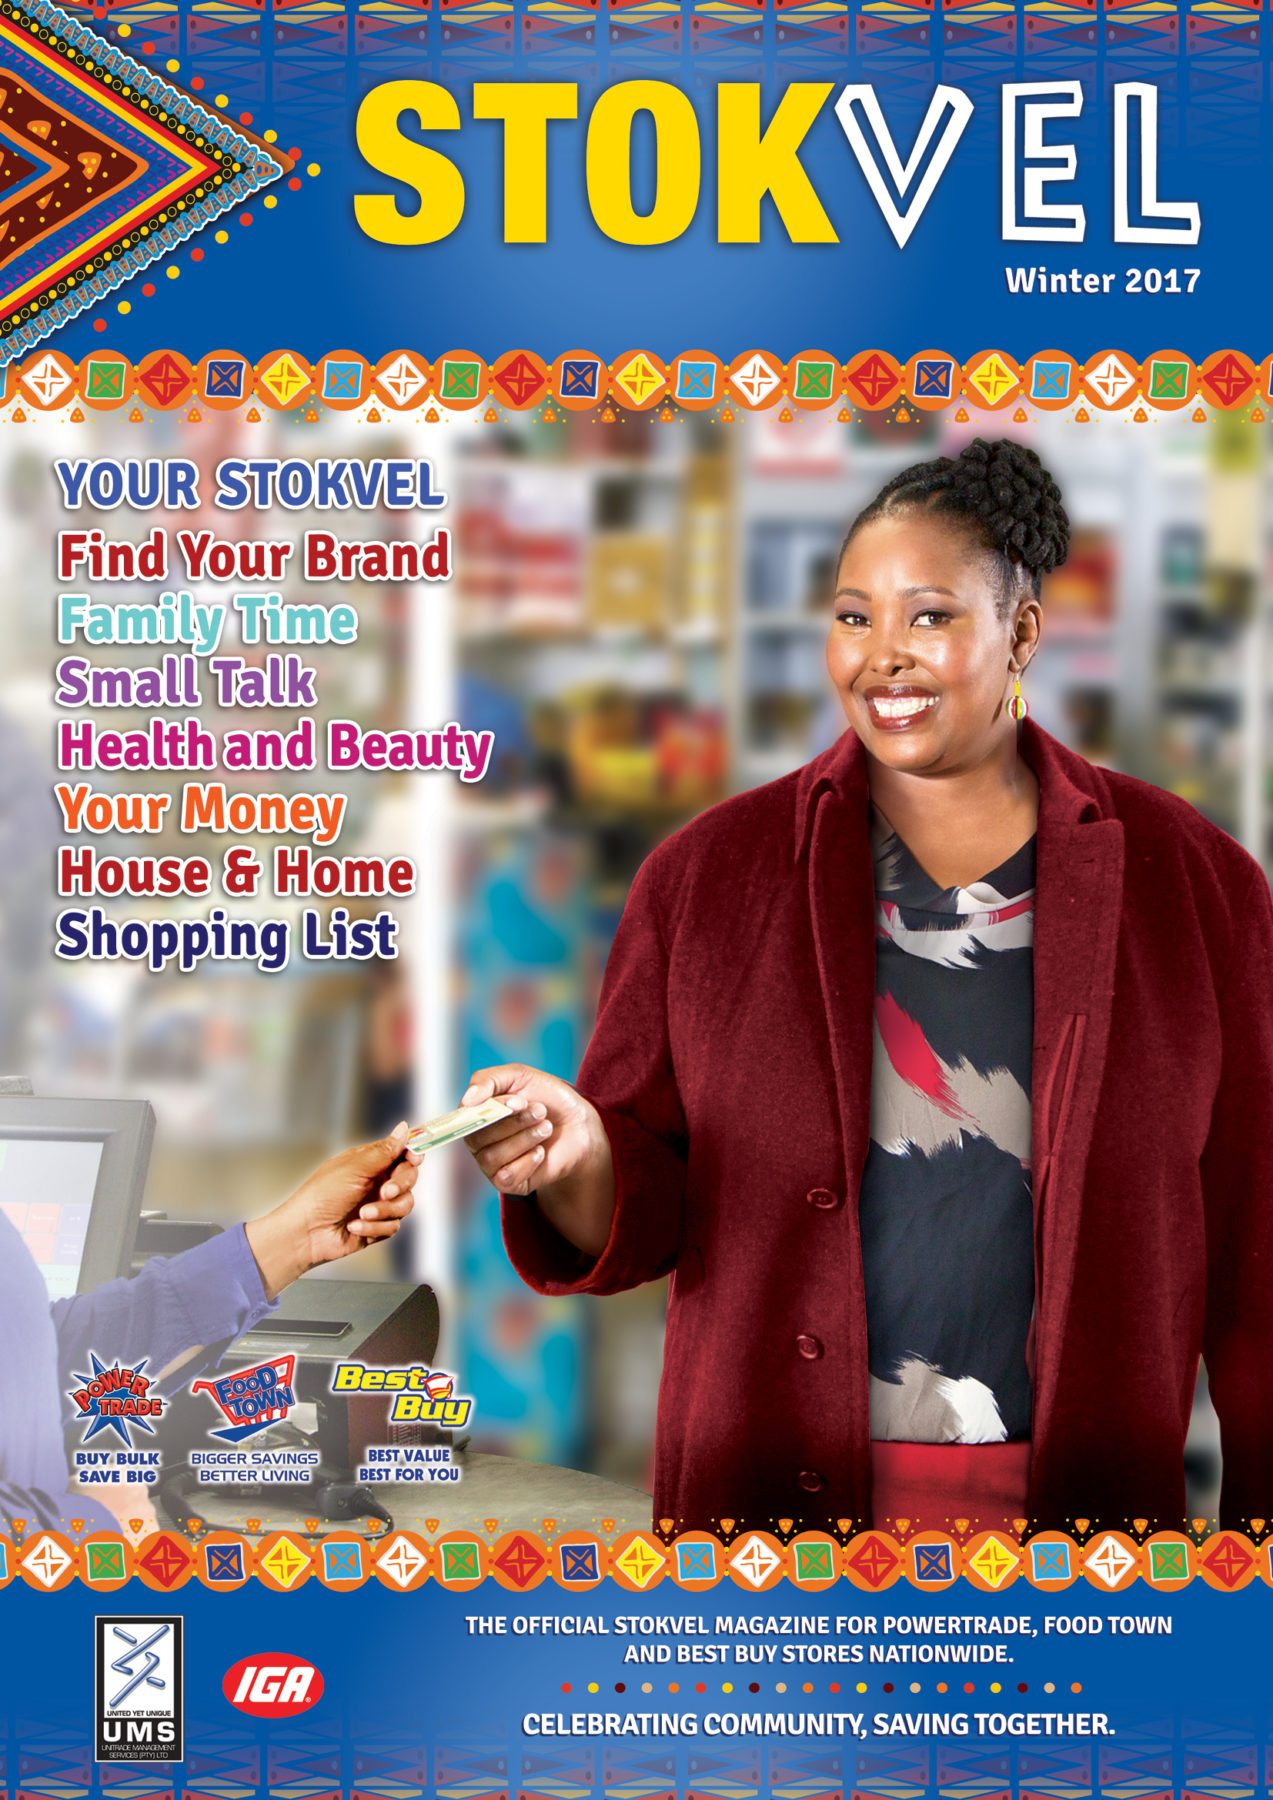 Stokvel Magazine Winter 2017 (1)